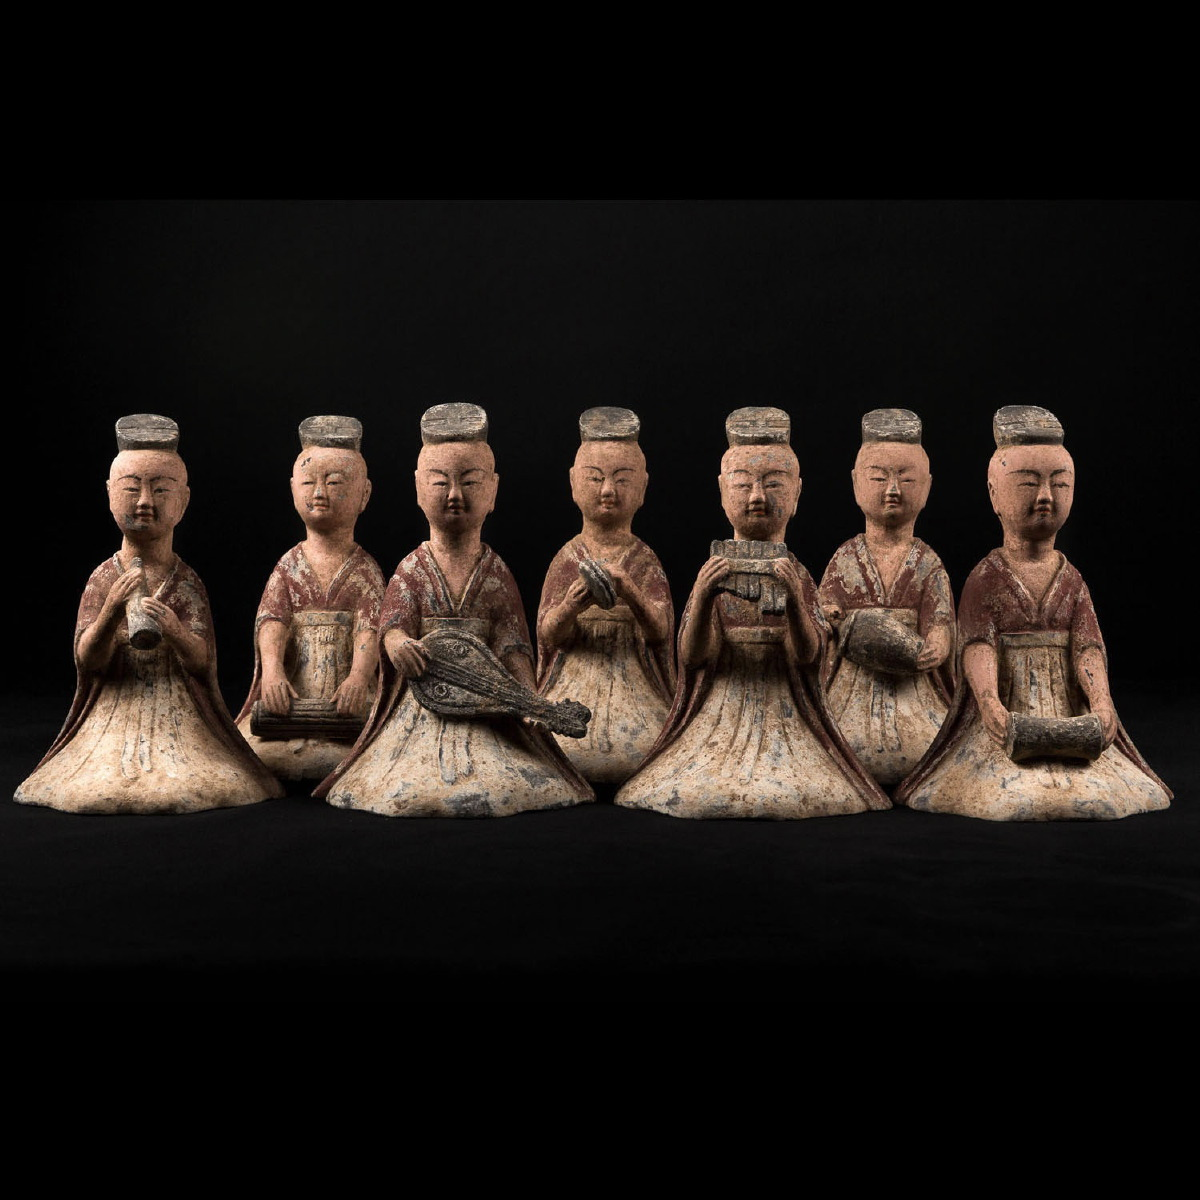 Photo of orchestra-female-musicians-tang-china-terracota-galerie-golconda